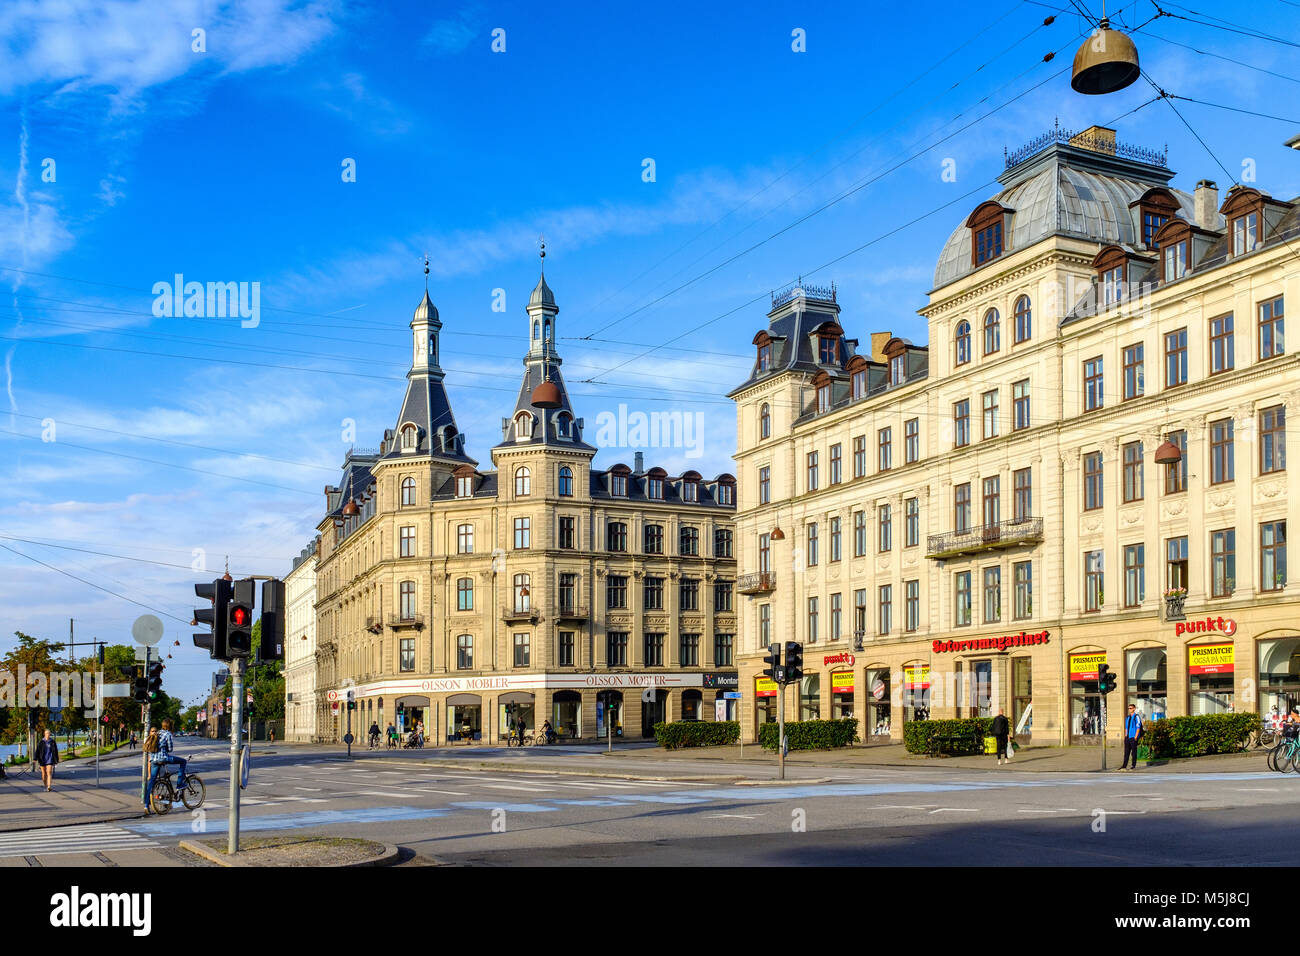 Copenhagen, Zealand region / Denmark - 2017/07/26: The Soerne Lakes district in central city - tenement houses and - Stock Image